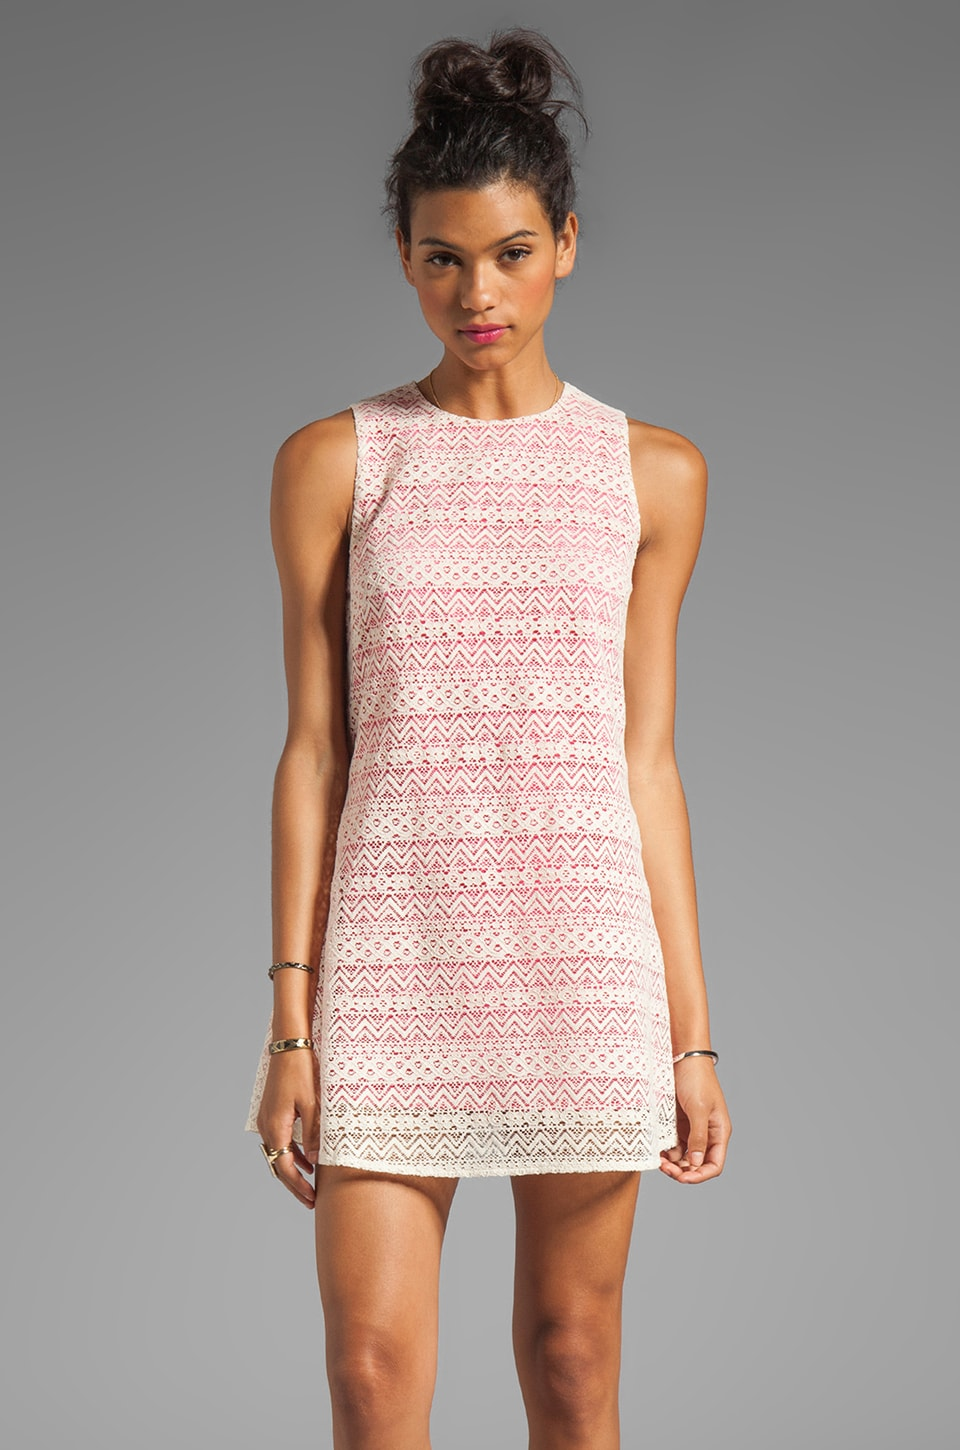 JARLO Tara Lace Tank Dress in Pink